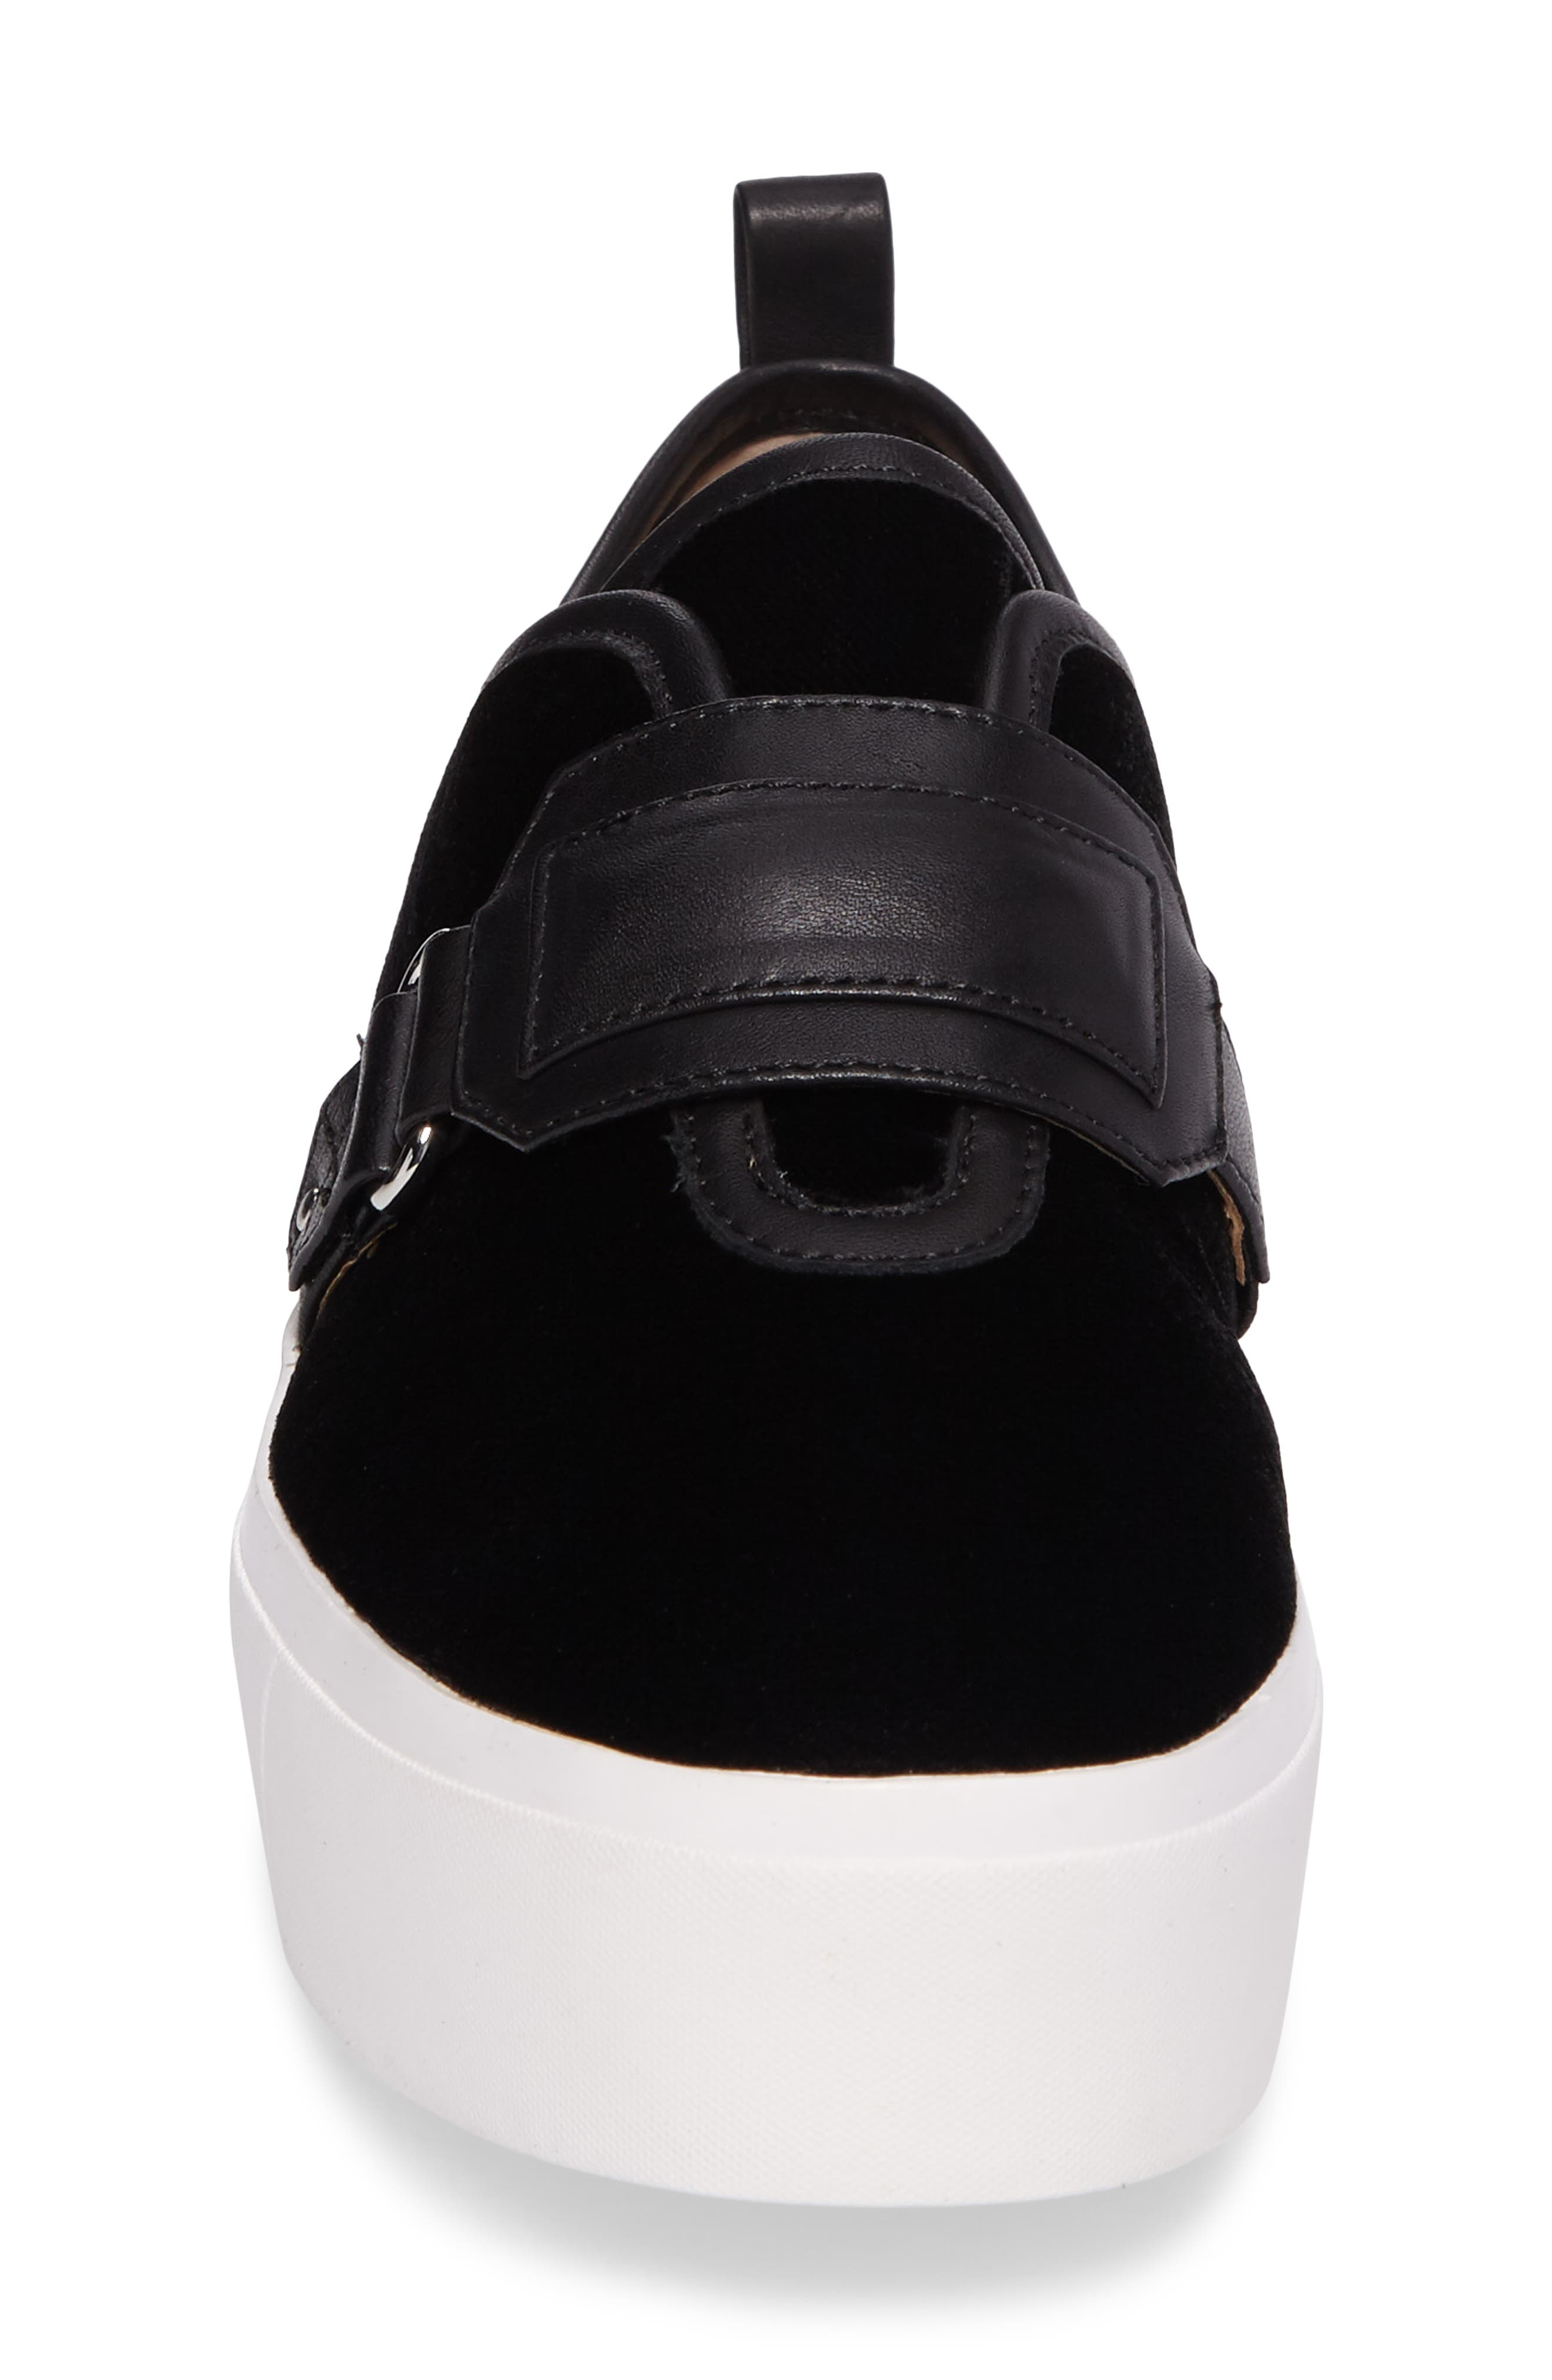 Juno Slip-On Sneaker,                             Alternate thumbnail 7, color,